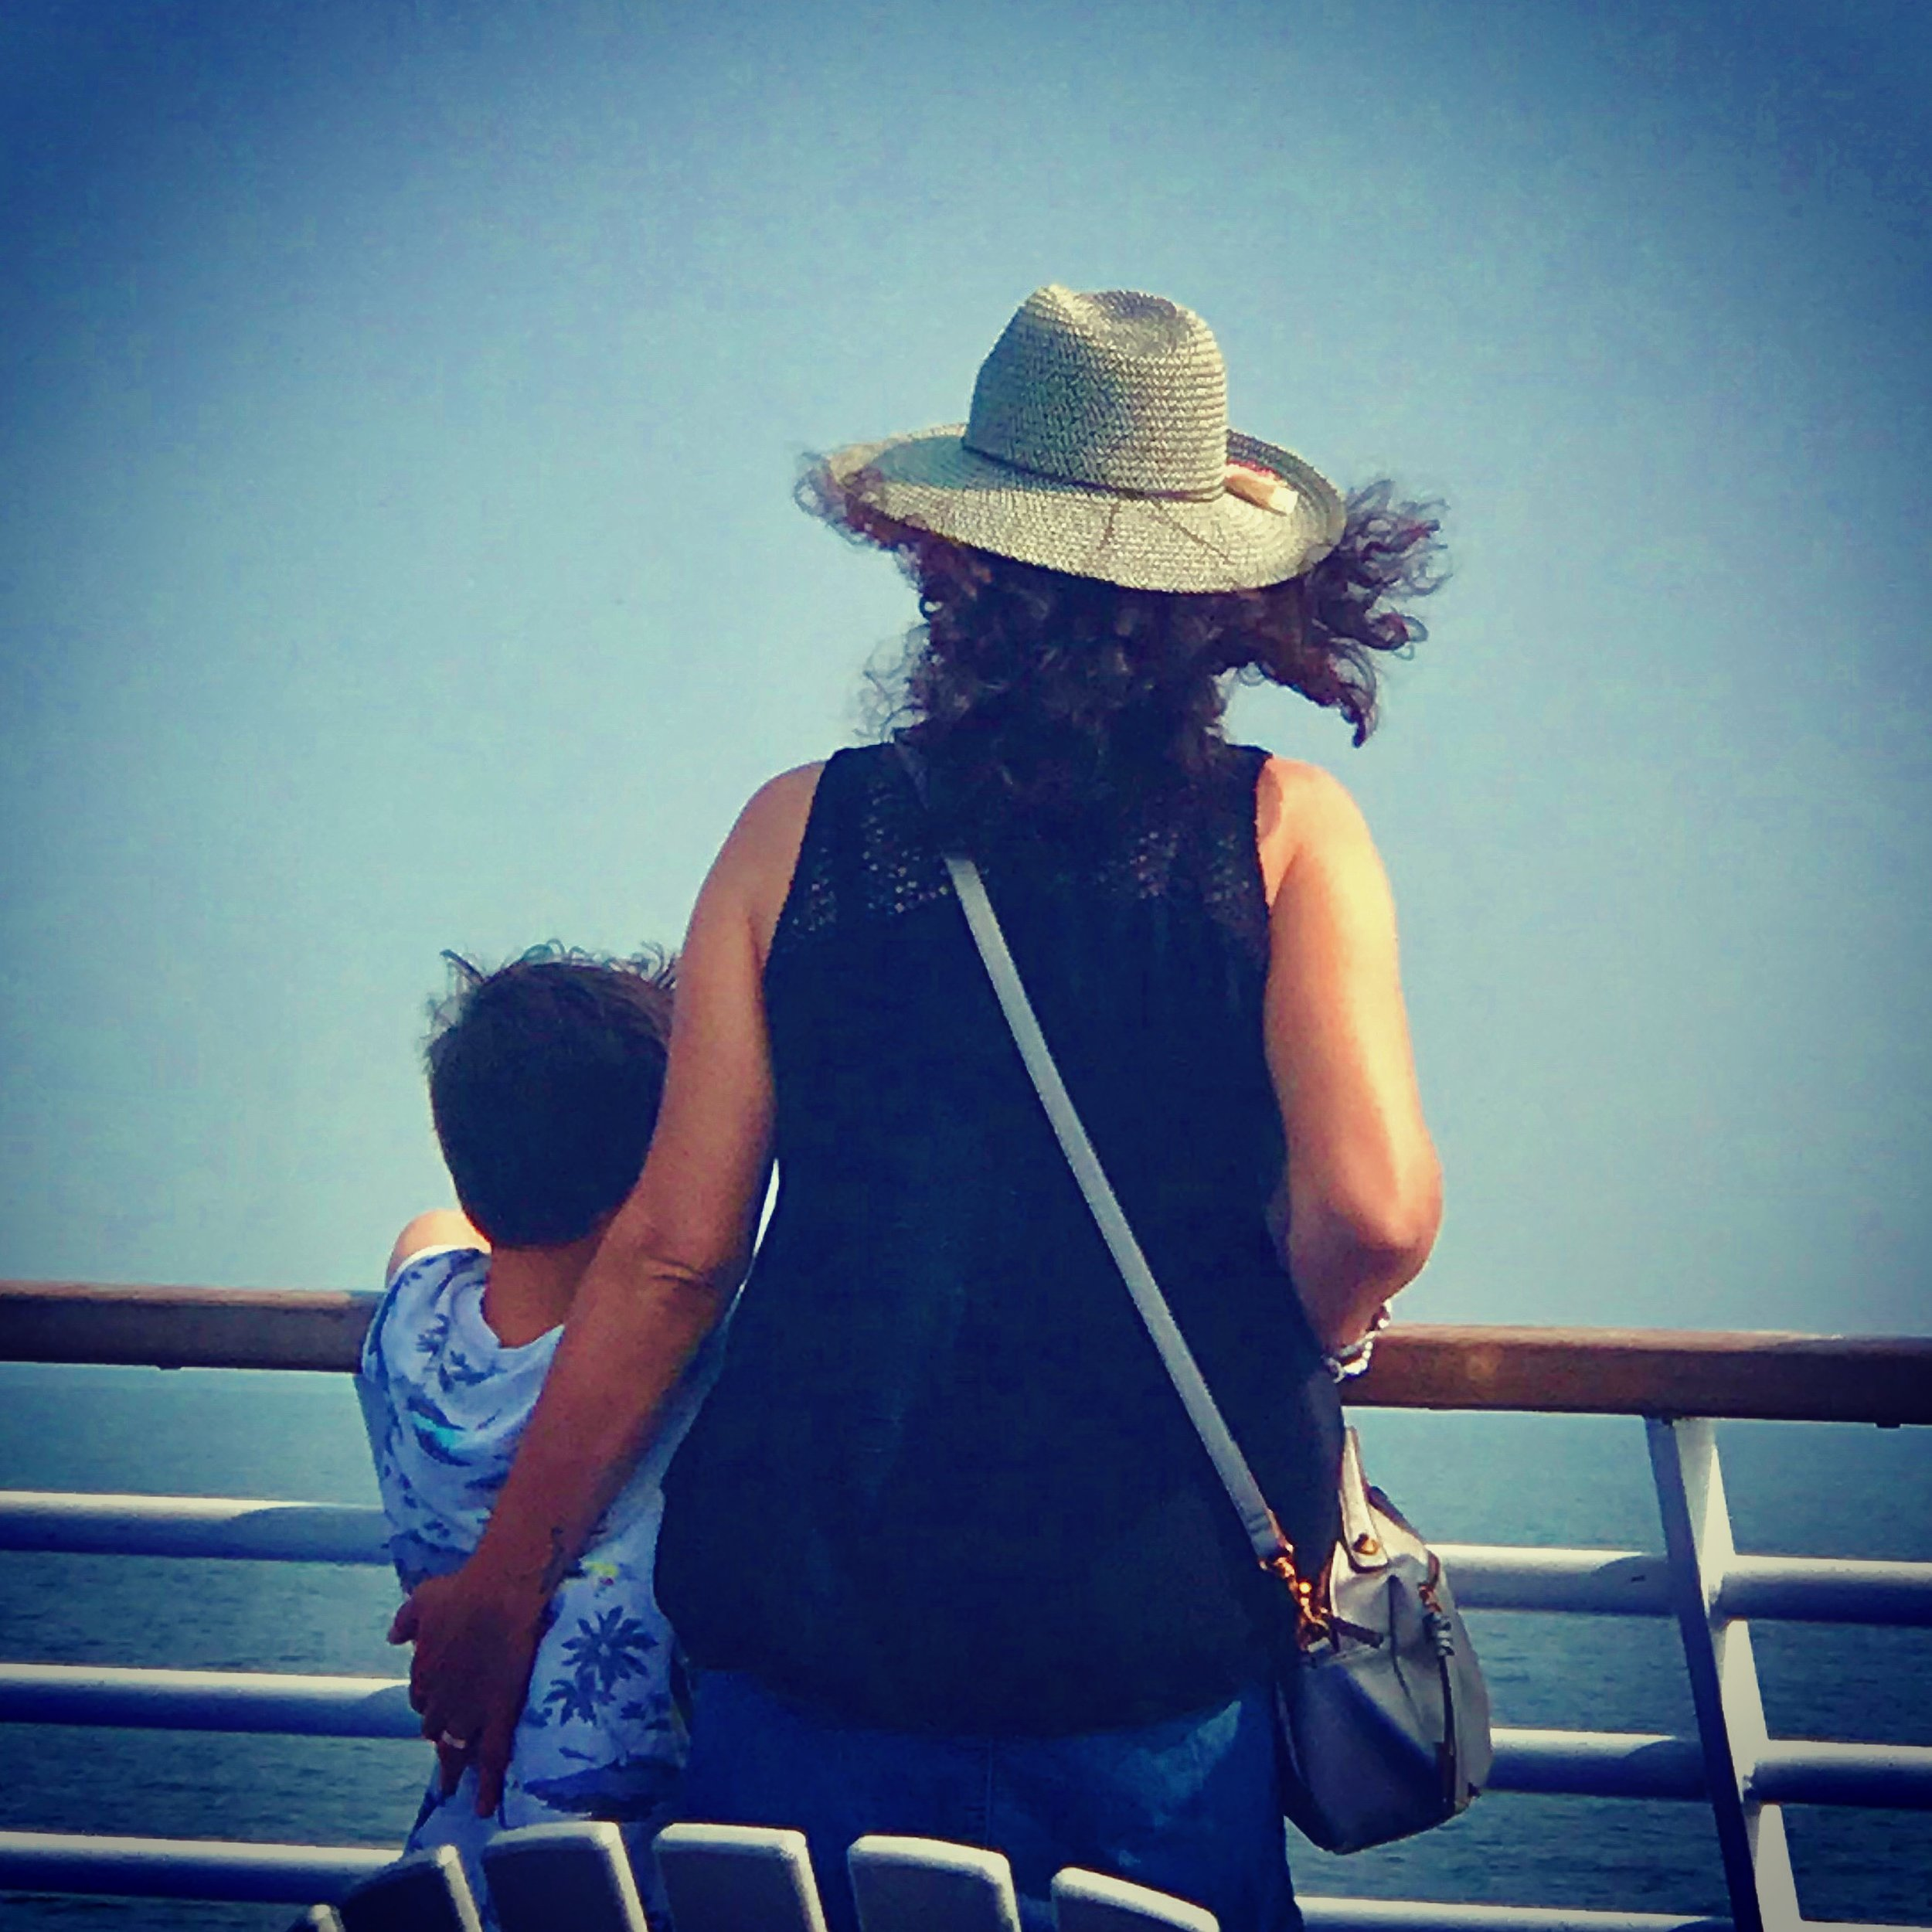 Wendy and her youngest, Noah, on the ferry.